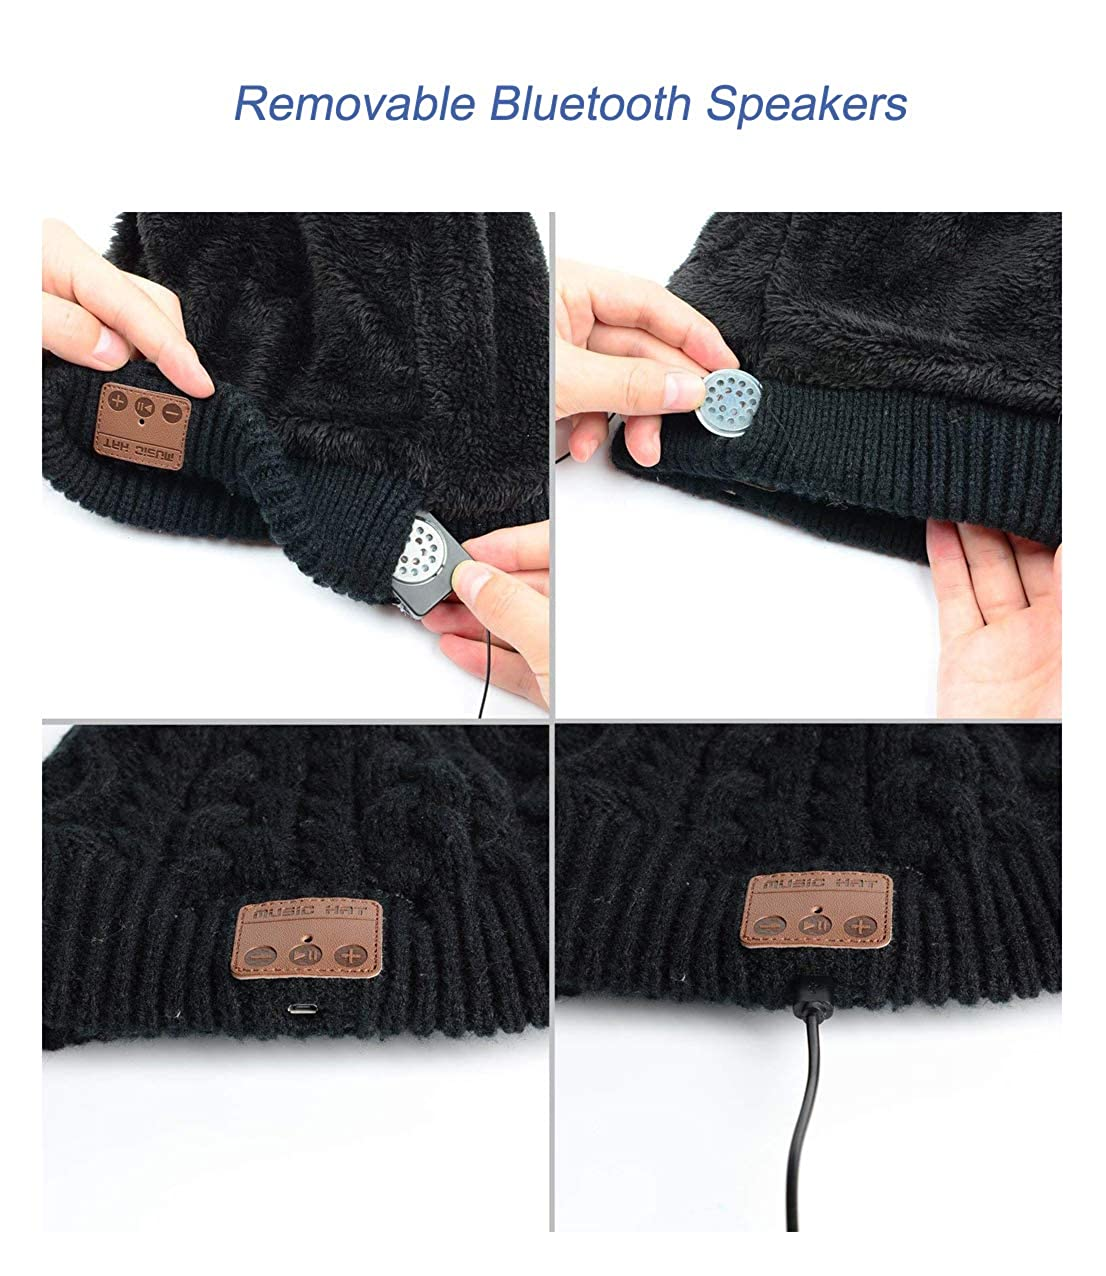 Fanzhou Wireless Bluetooth Beanie with Headphones Built in Double Knit Hands Free Music Cap with Stereo Speaker Removal Winter Beanie Hat for Running Skiing Skating Hiking Cycling